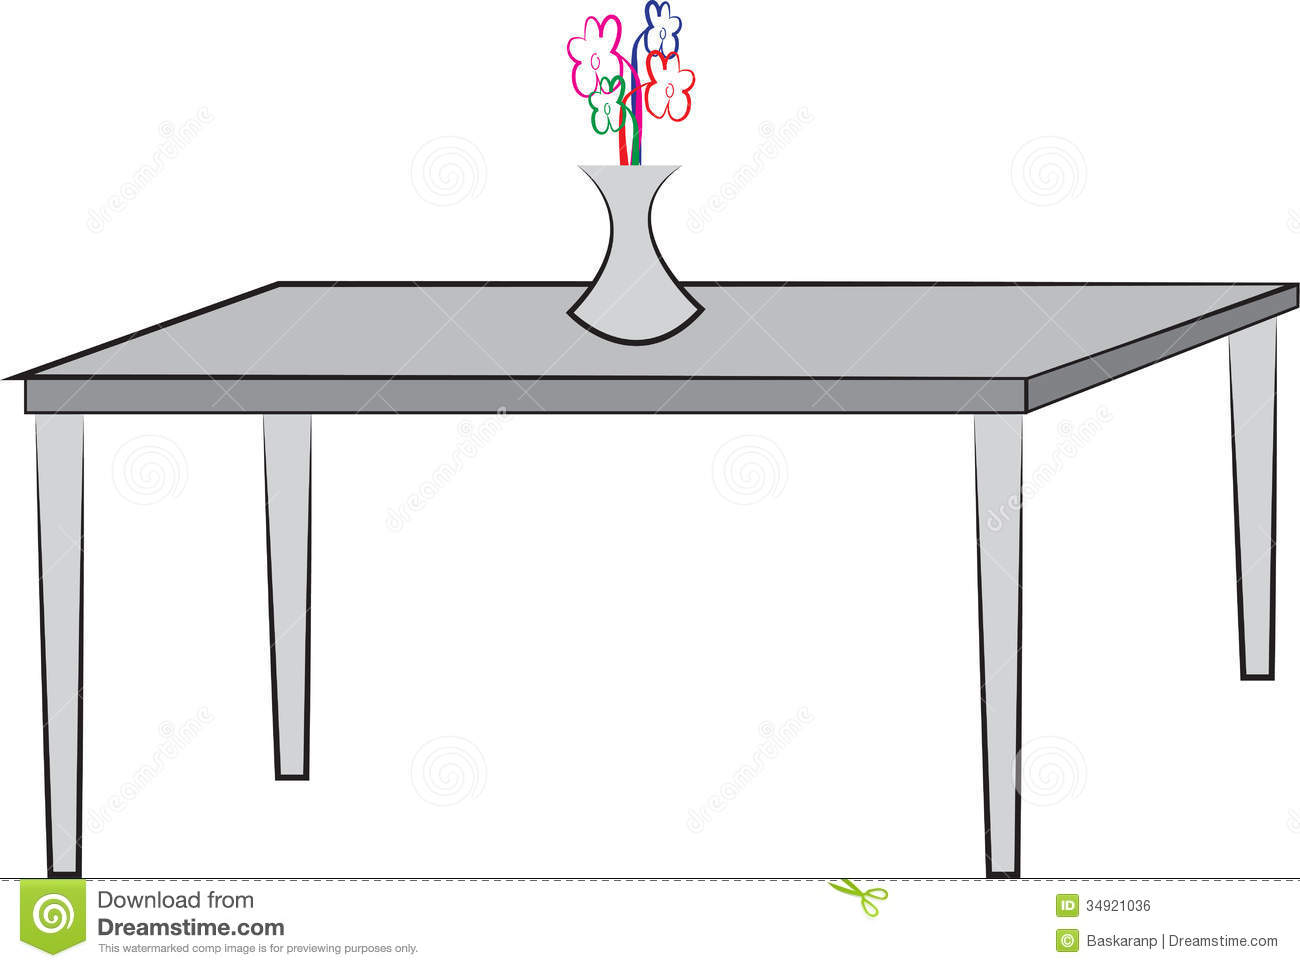 dessin simple de table illustration de vecteur